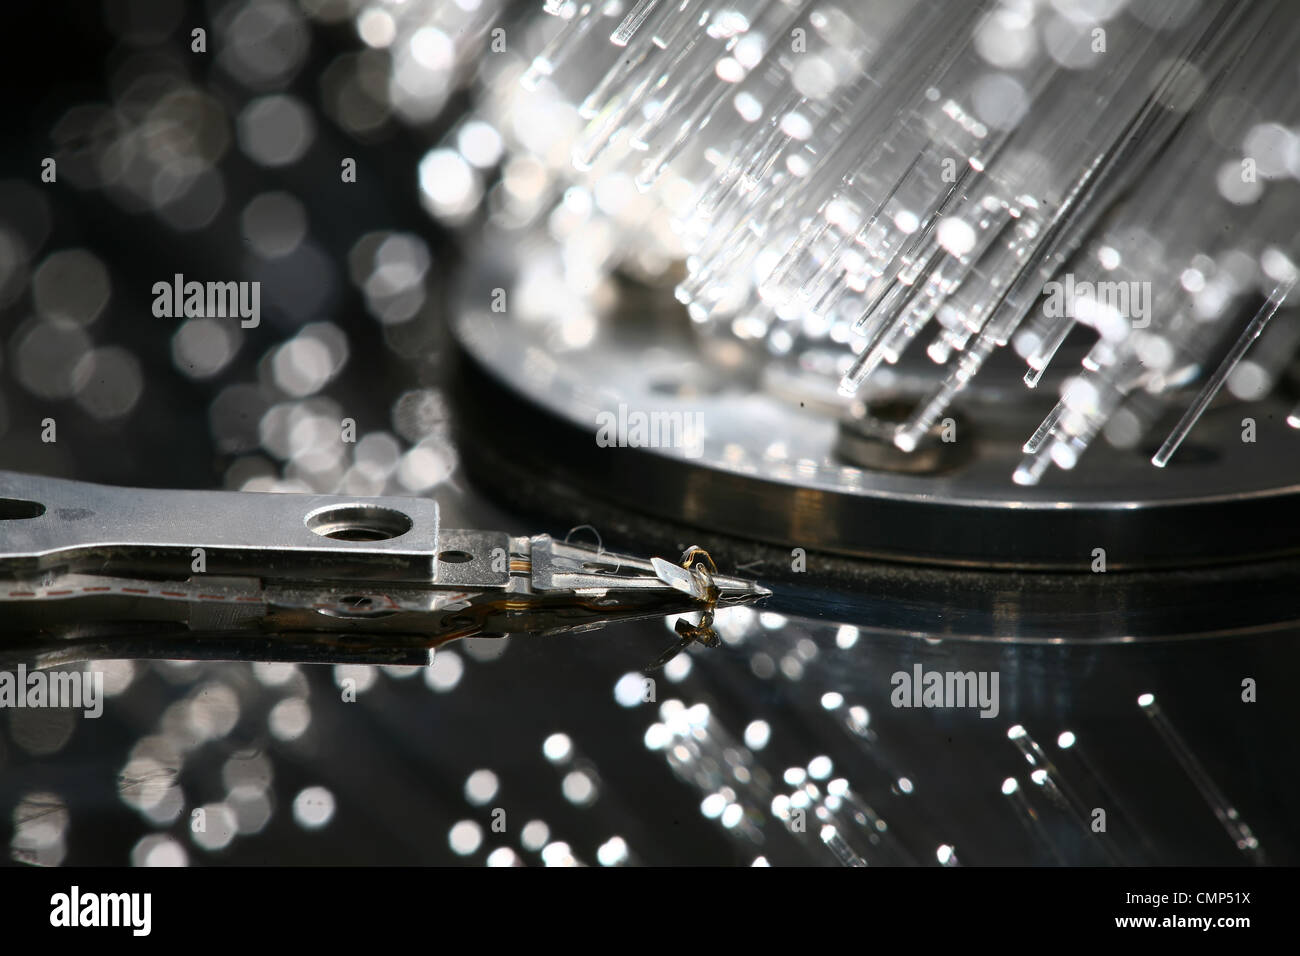 Fiber optics background with lots of light spots - Stock Image